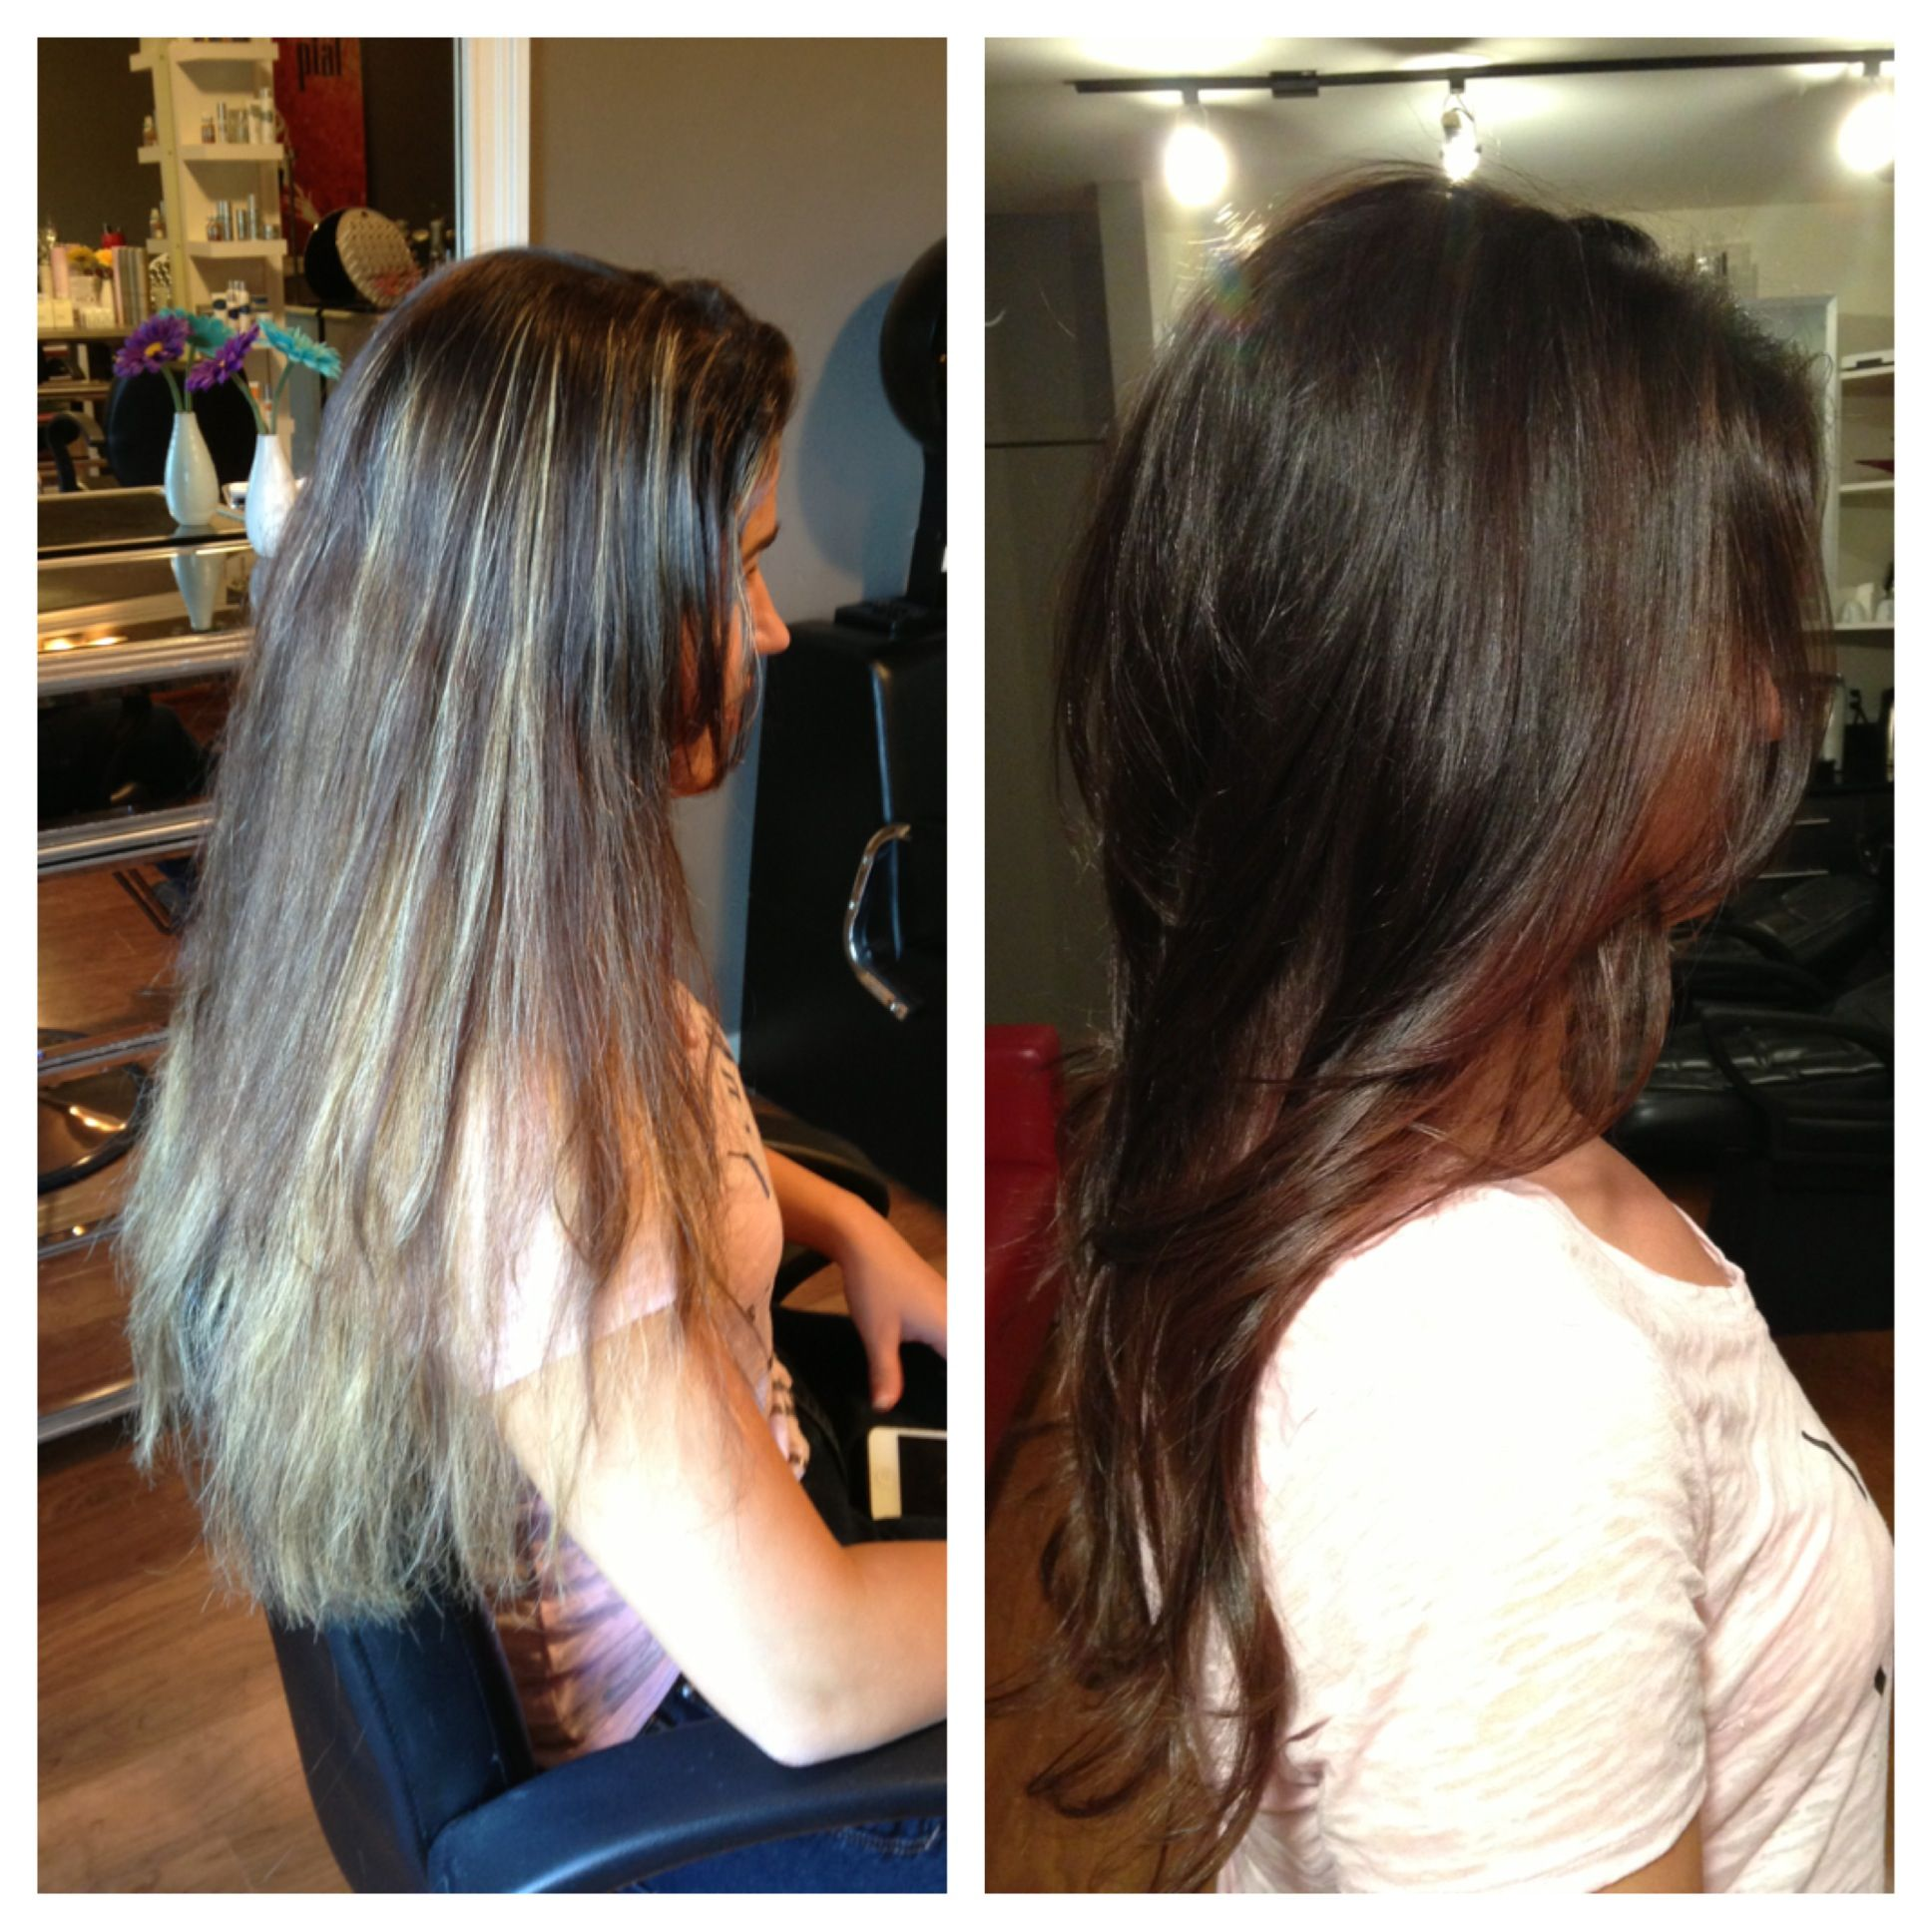 Gorgeous before and after hair transformation gorgeous rich